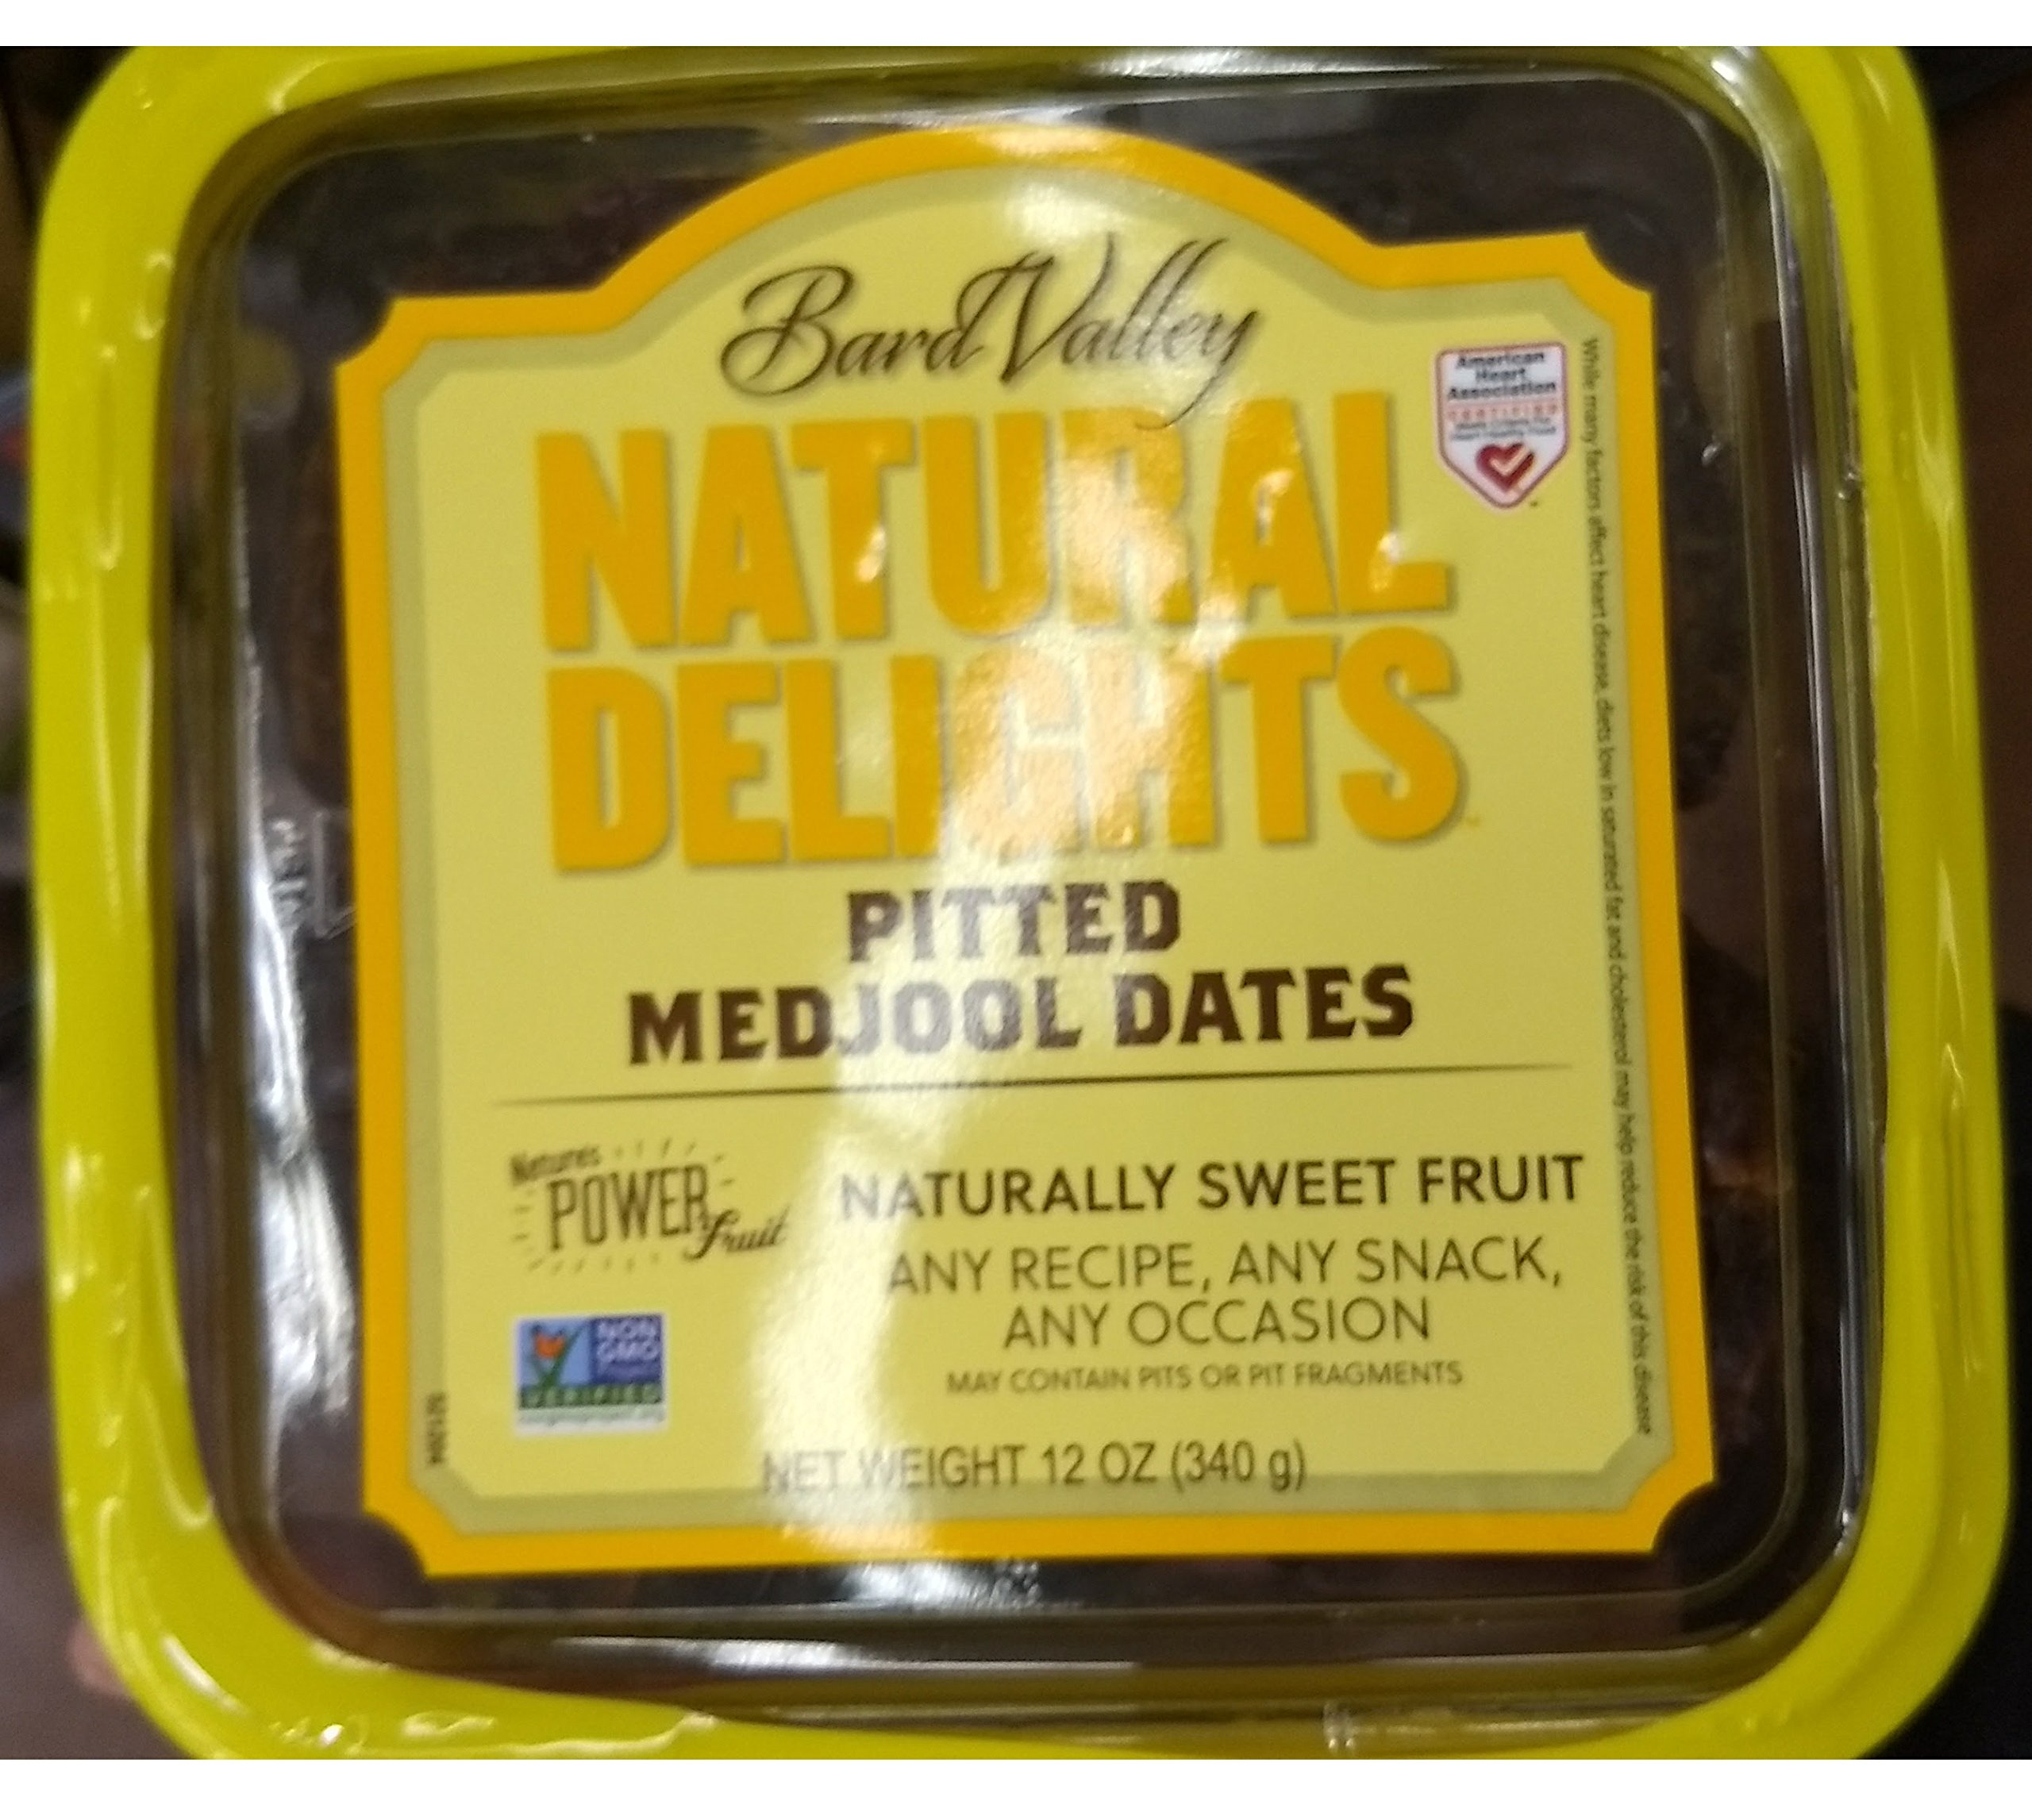 Natural Delights Pitted Medjool Dates, Naturally sweet fruit 12oz, pack of 1